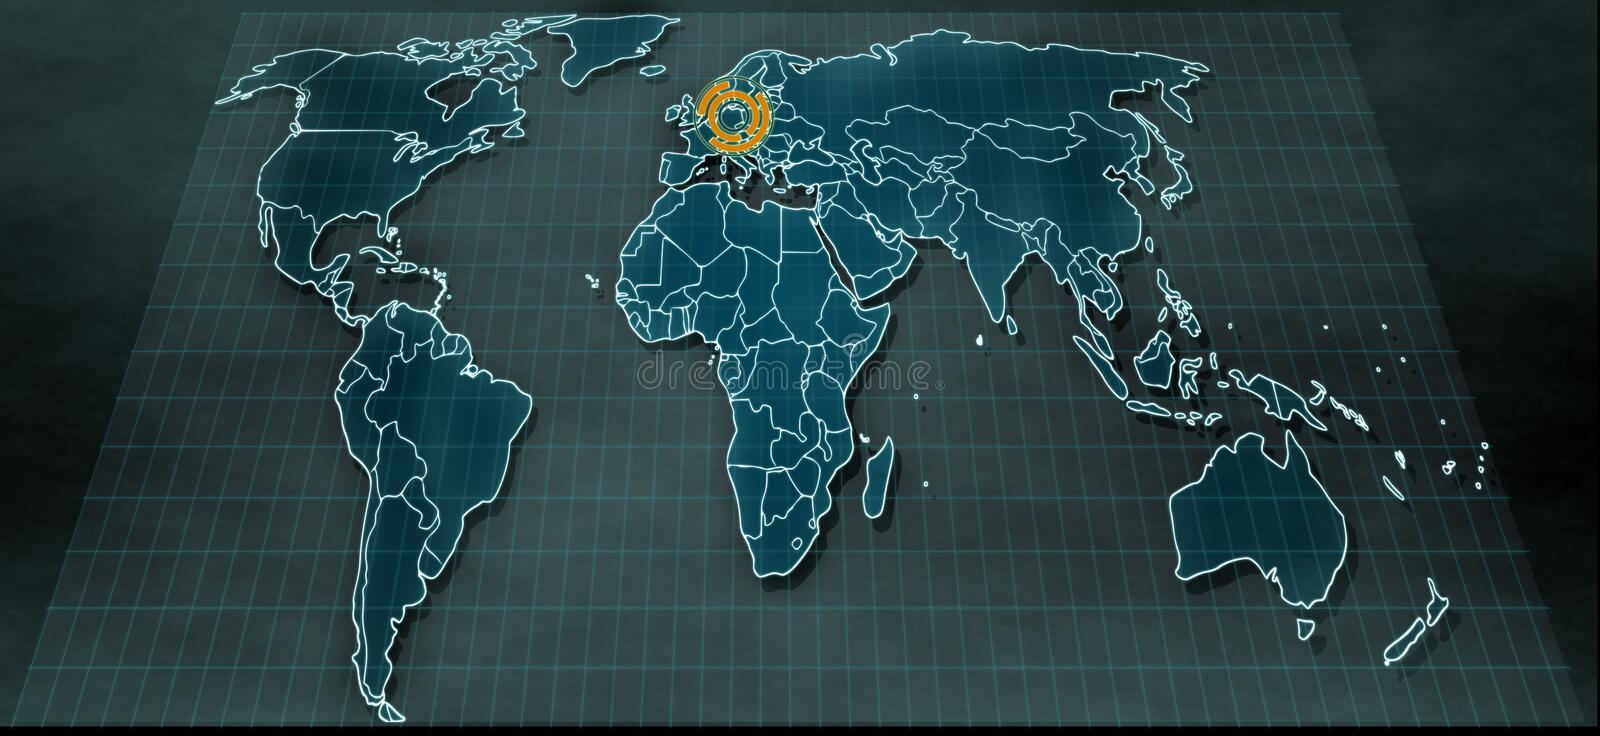 Futuristic world map in digital display with highlight on berlin download futuristic world map in digital display with highlight on berlin stock illustration illustration of gumiabroncs Choice Image